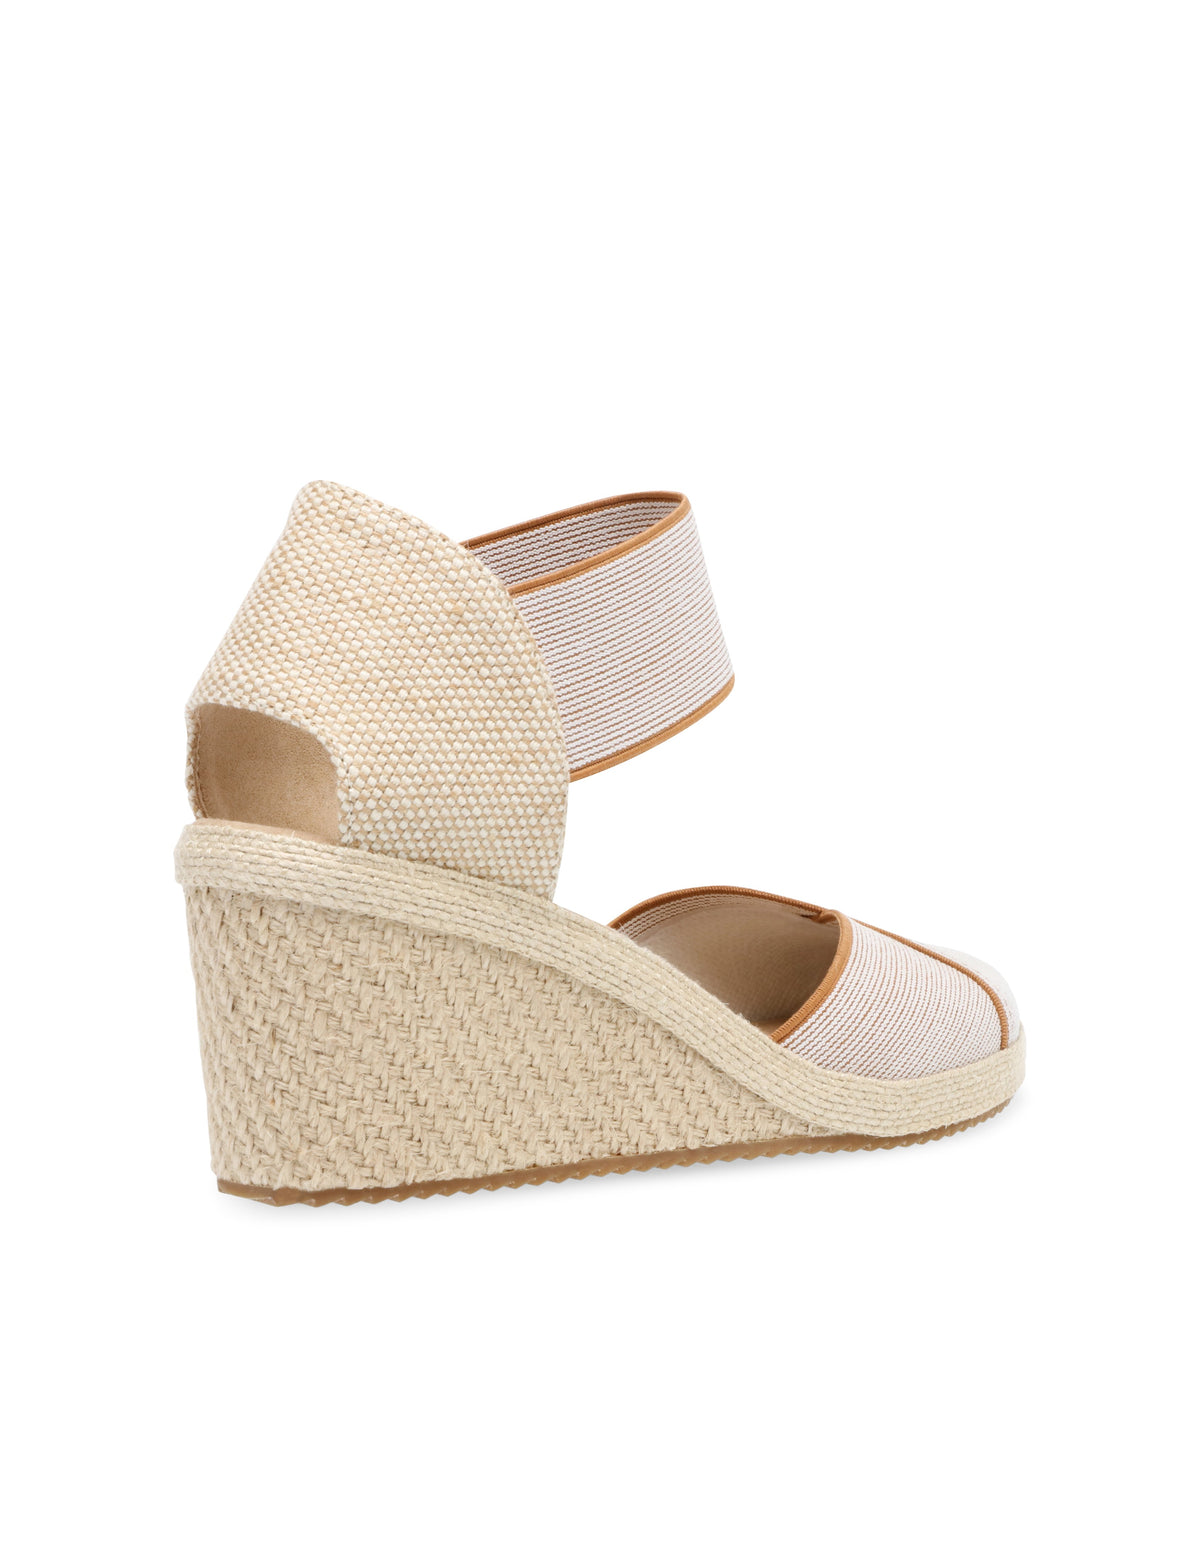 Anne Klein Zoey Round Toe Espadrille Wedge in Natural